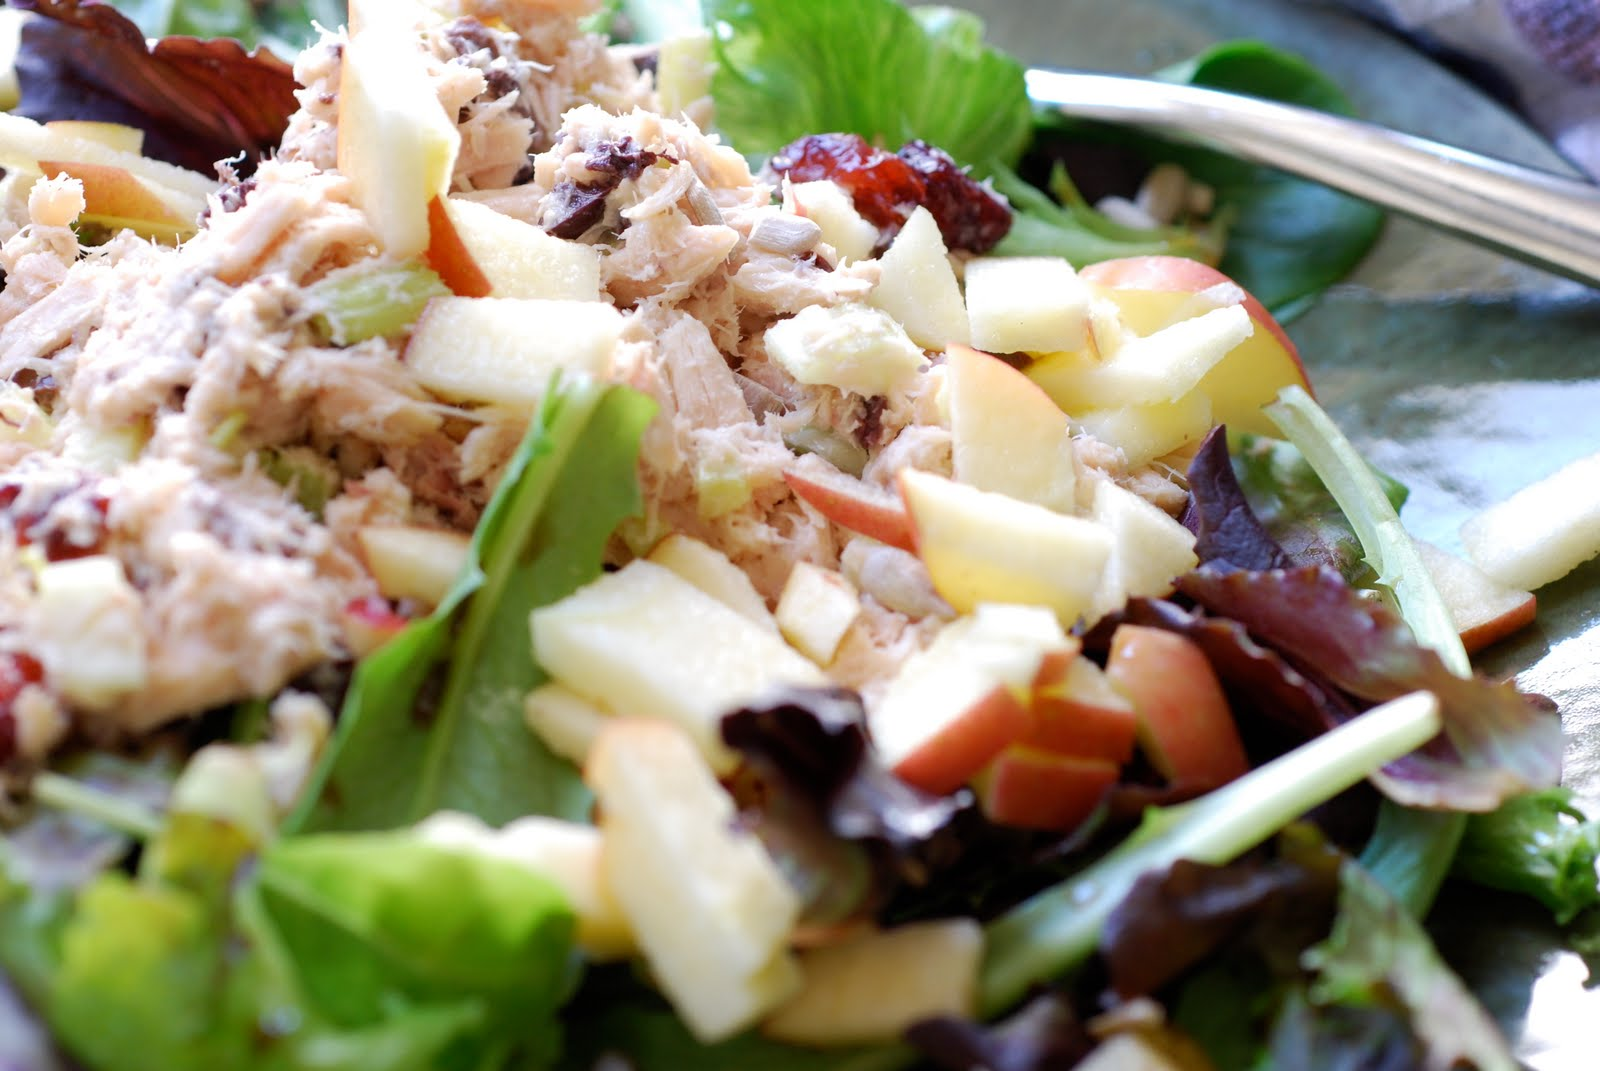 Recipes: Best Tuna Fish Salad